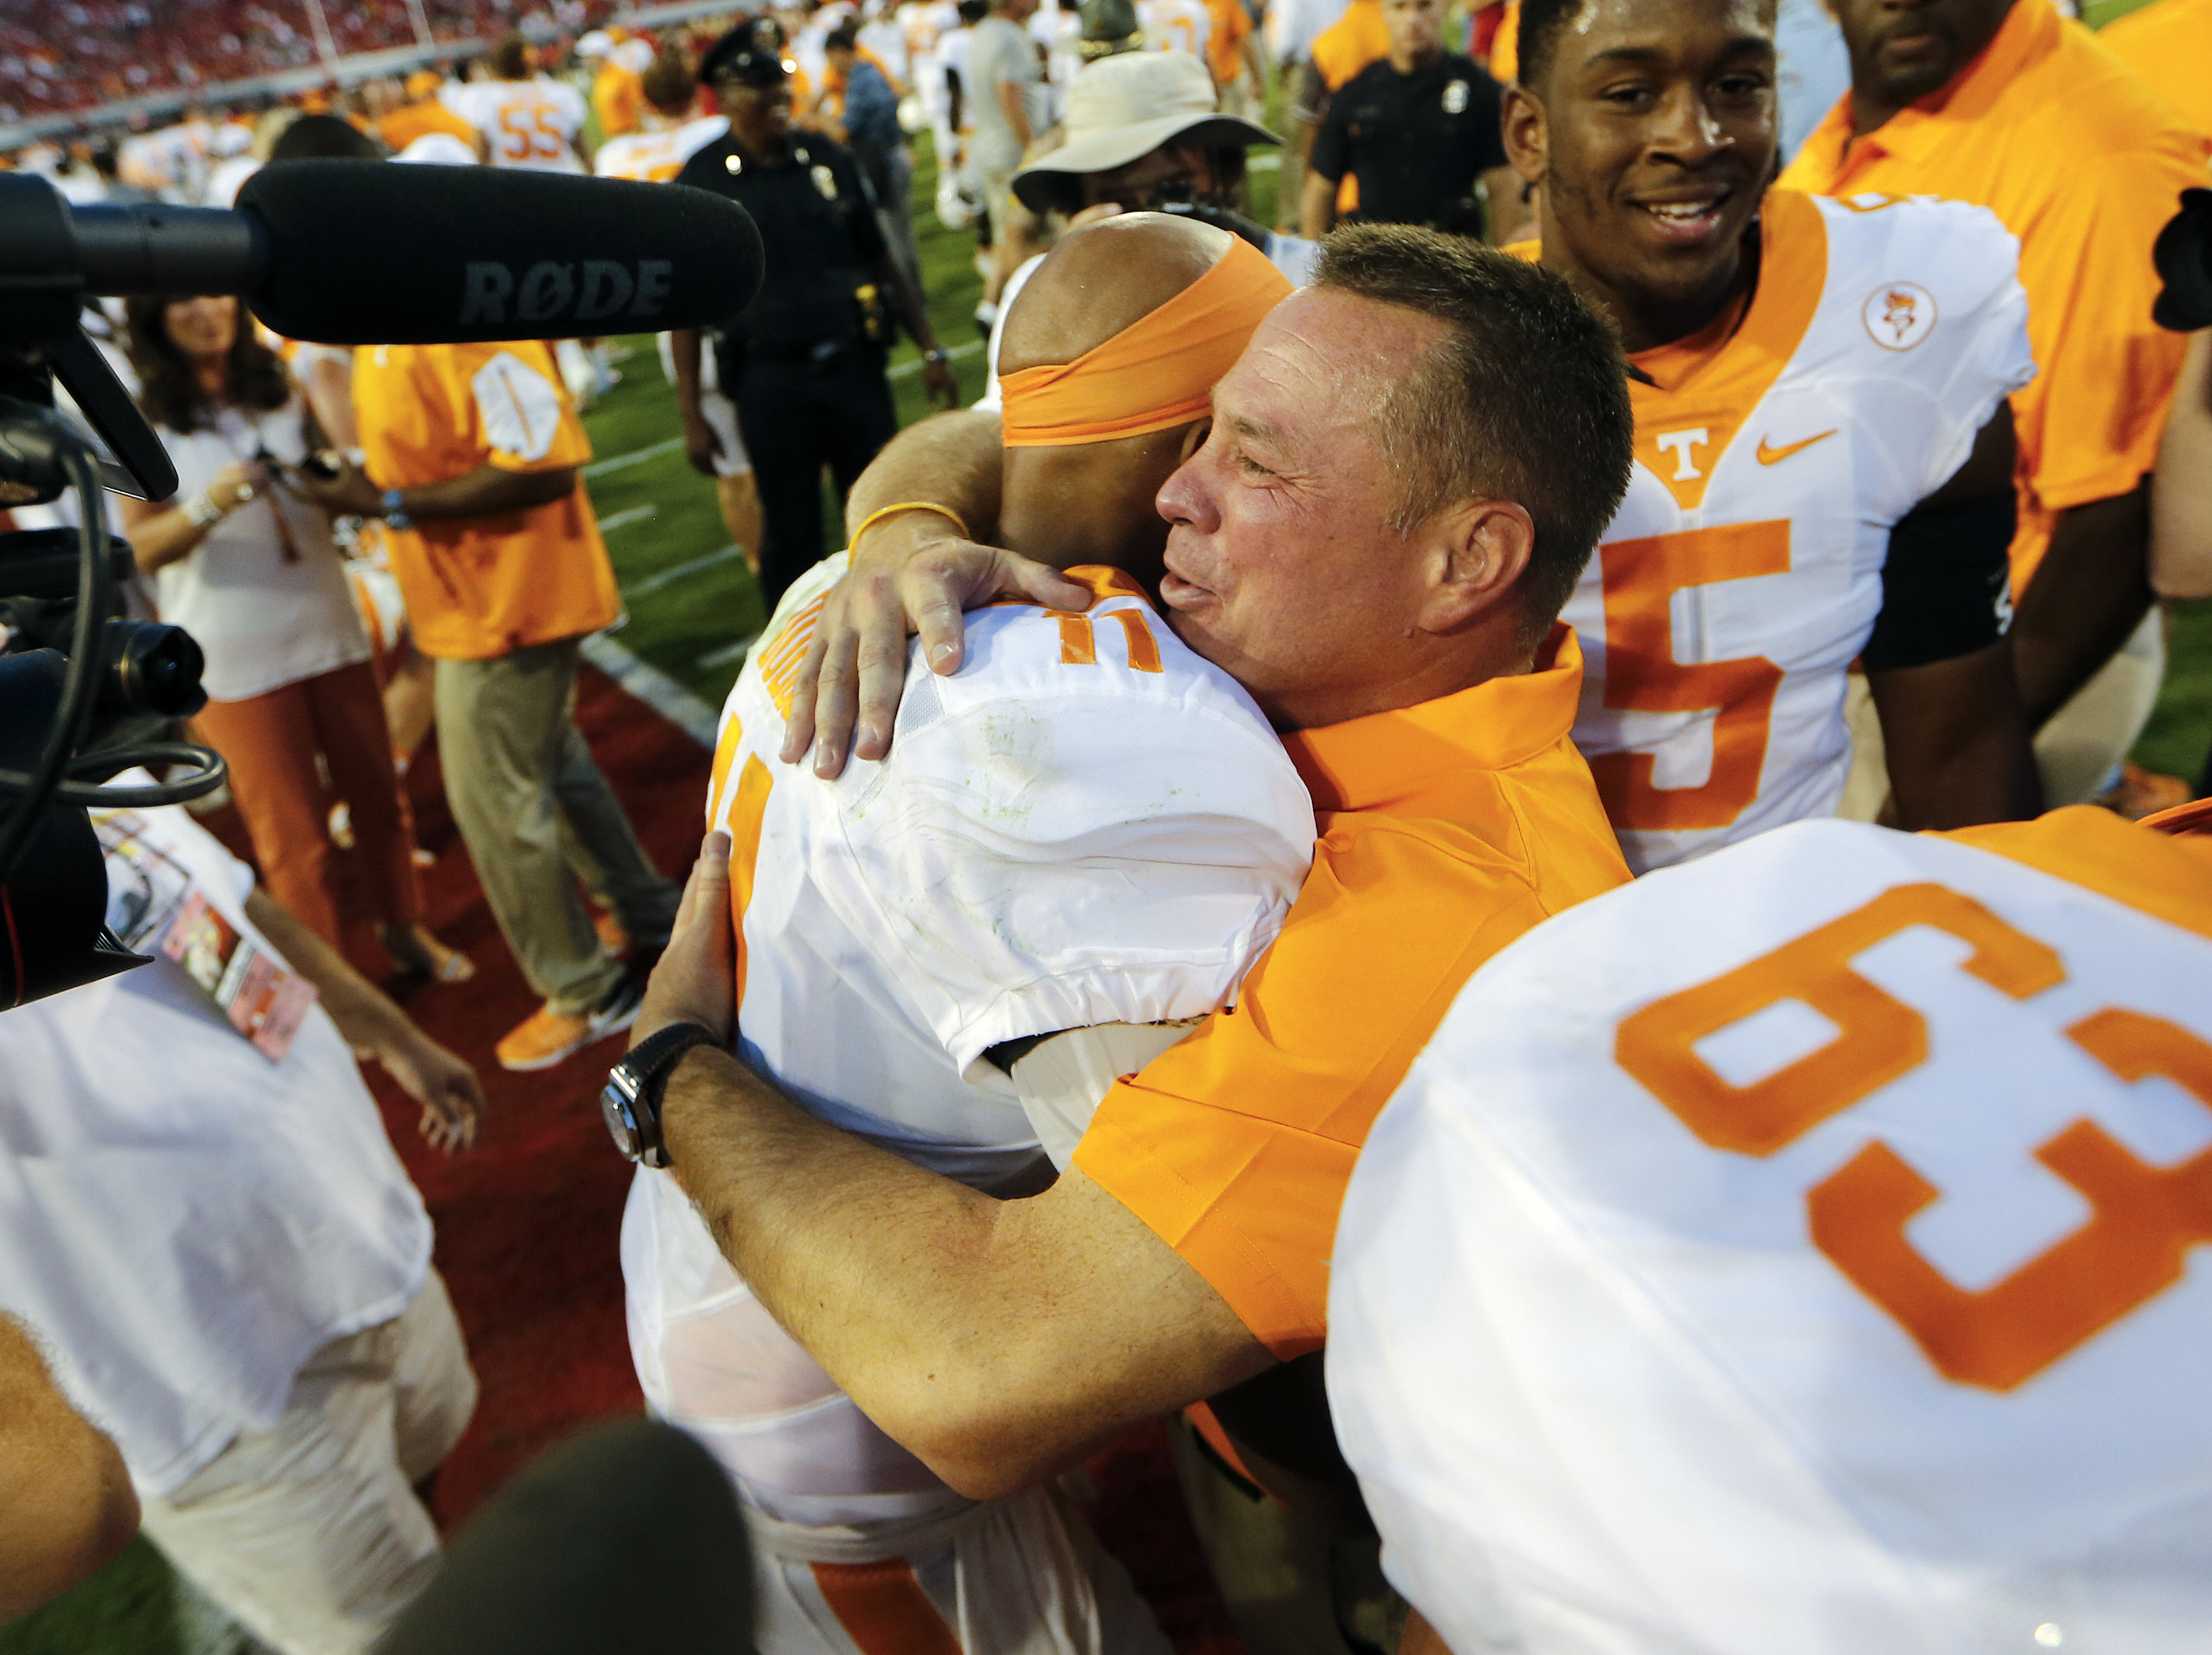 FILE - In this Oct. 1, 2016, file photo, Tennessee head coach  Butch Jones hugs quarterback Joshua Dobbs (11) after defeating Georgia 34-31 in an NCAA college football game, in Athens, Ga. Dobbs completed a last-second pass to wide receiver Jauan Jennings